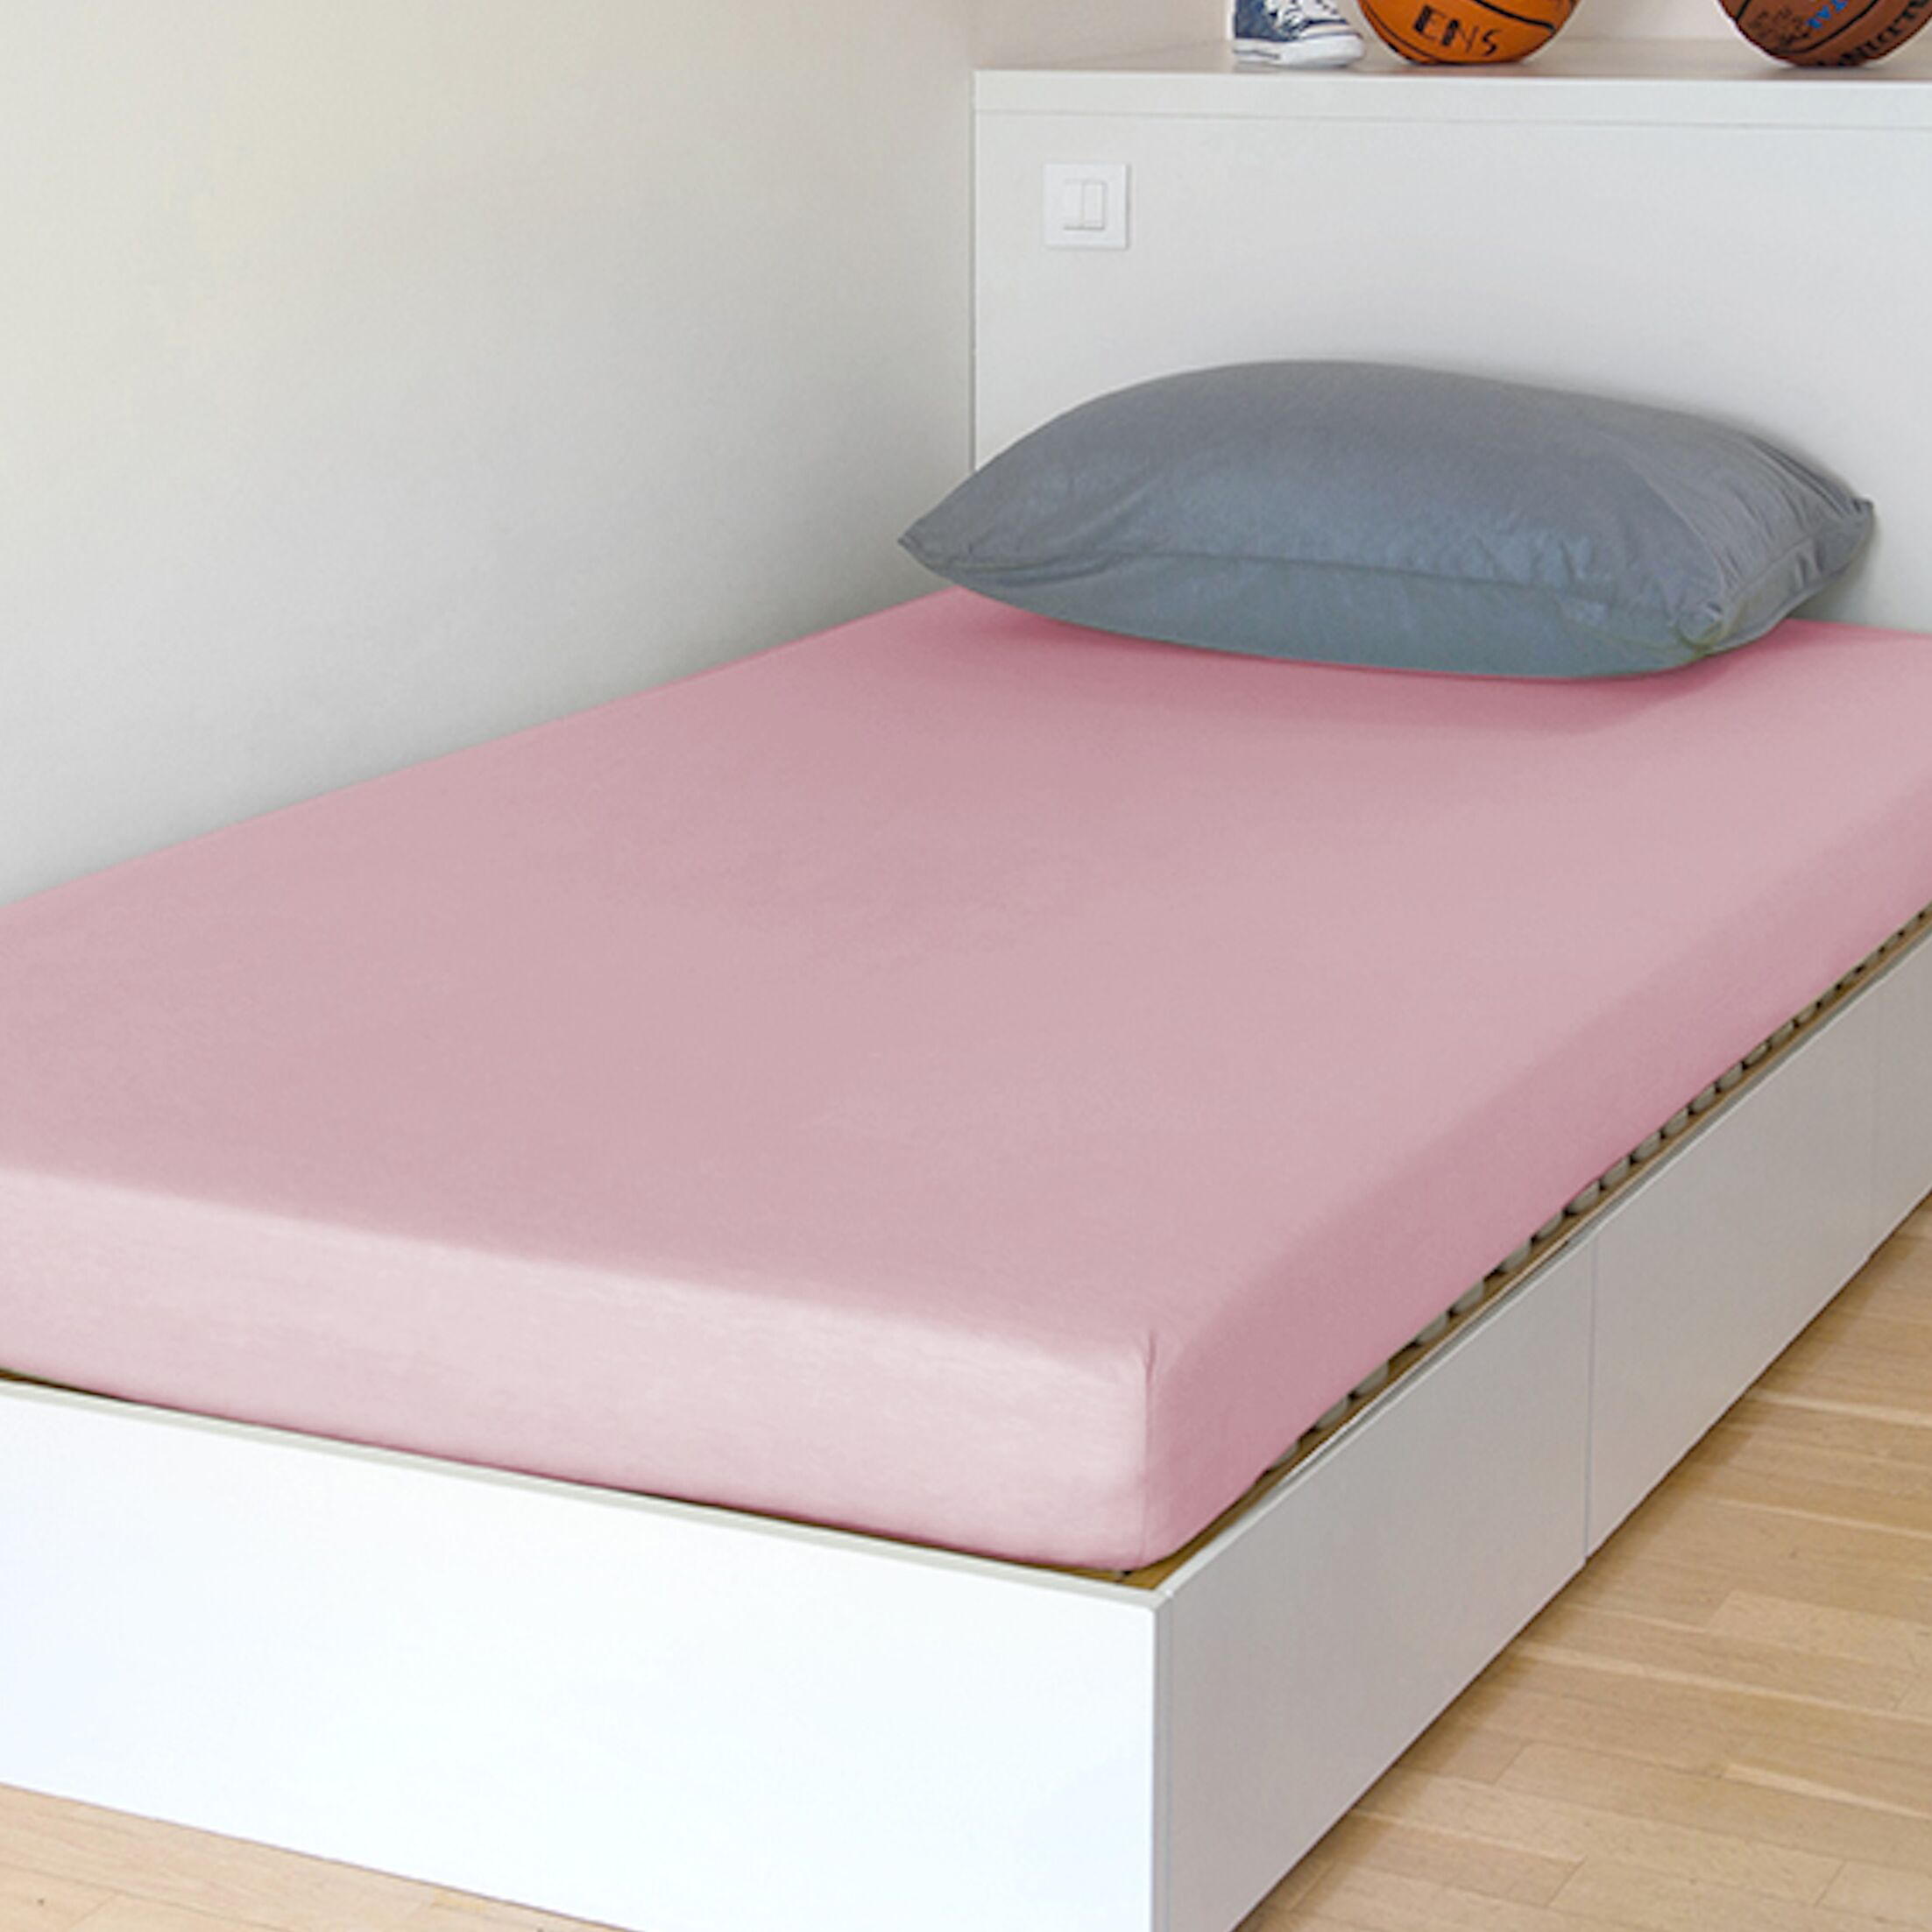 Breathable and Waterproof Select Fitted Sheet and Protector Size: 75